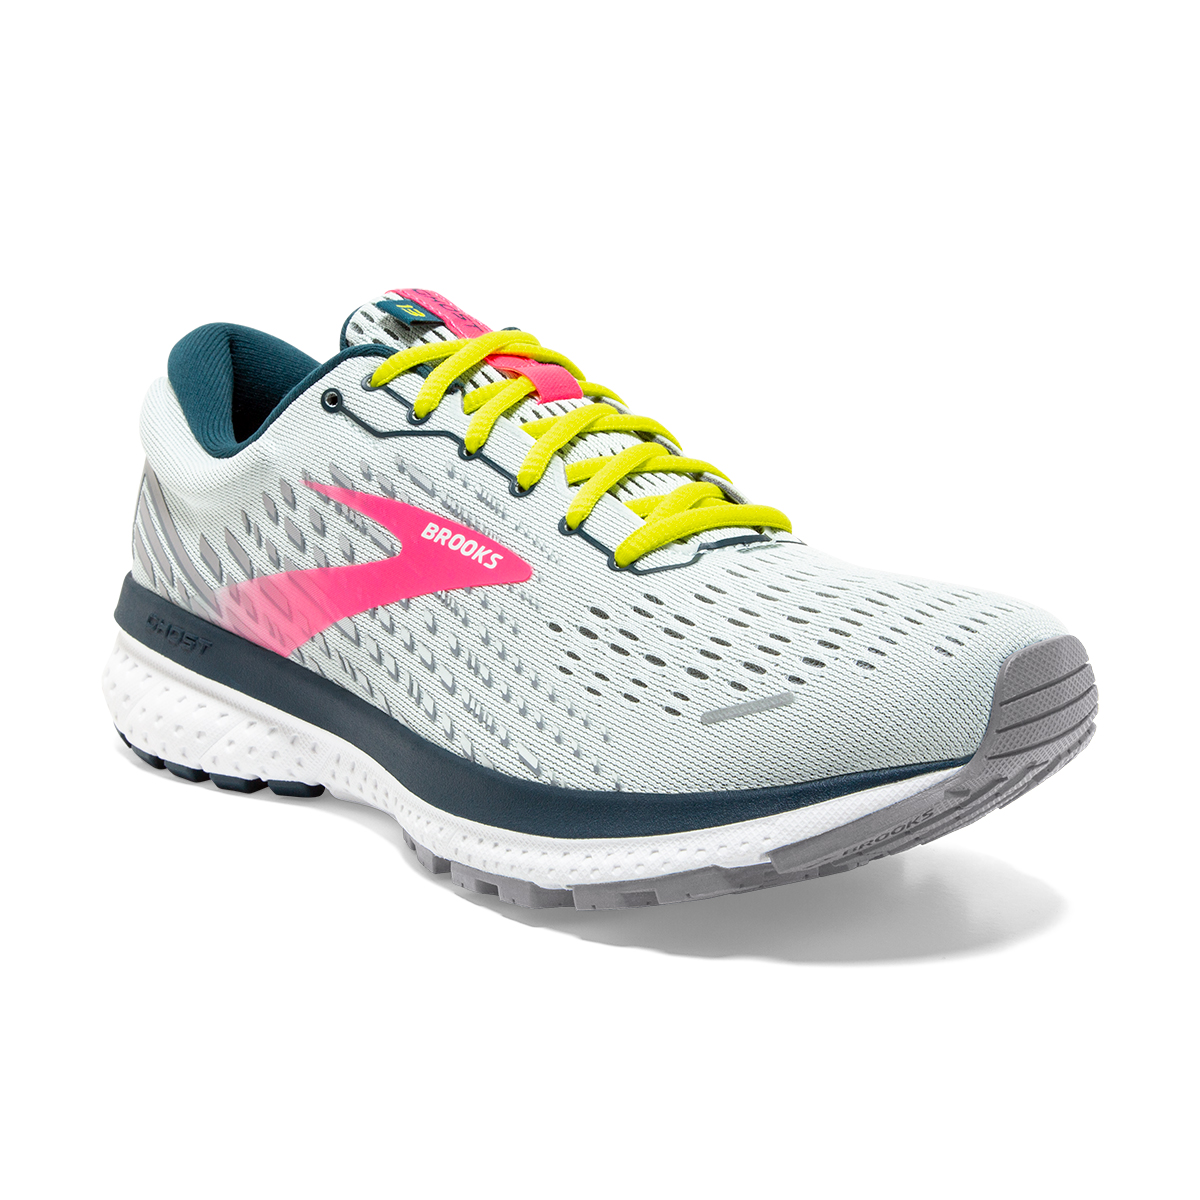 Women's Brooks Ghost 13 Running Shoes - Color: Ice Flow/Pink/Pond - Size: 5 - Width: Regular, Ice Flow/Pink/Pond, large, image 3